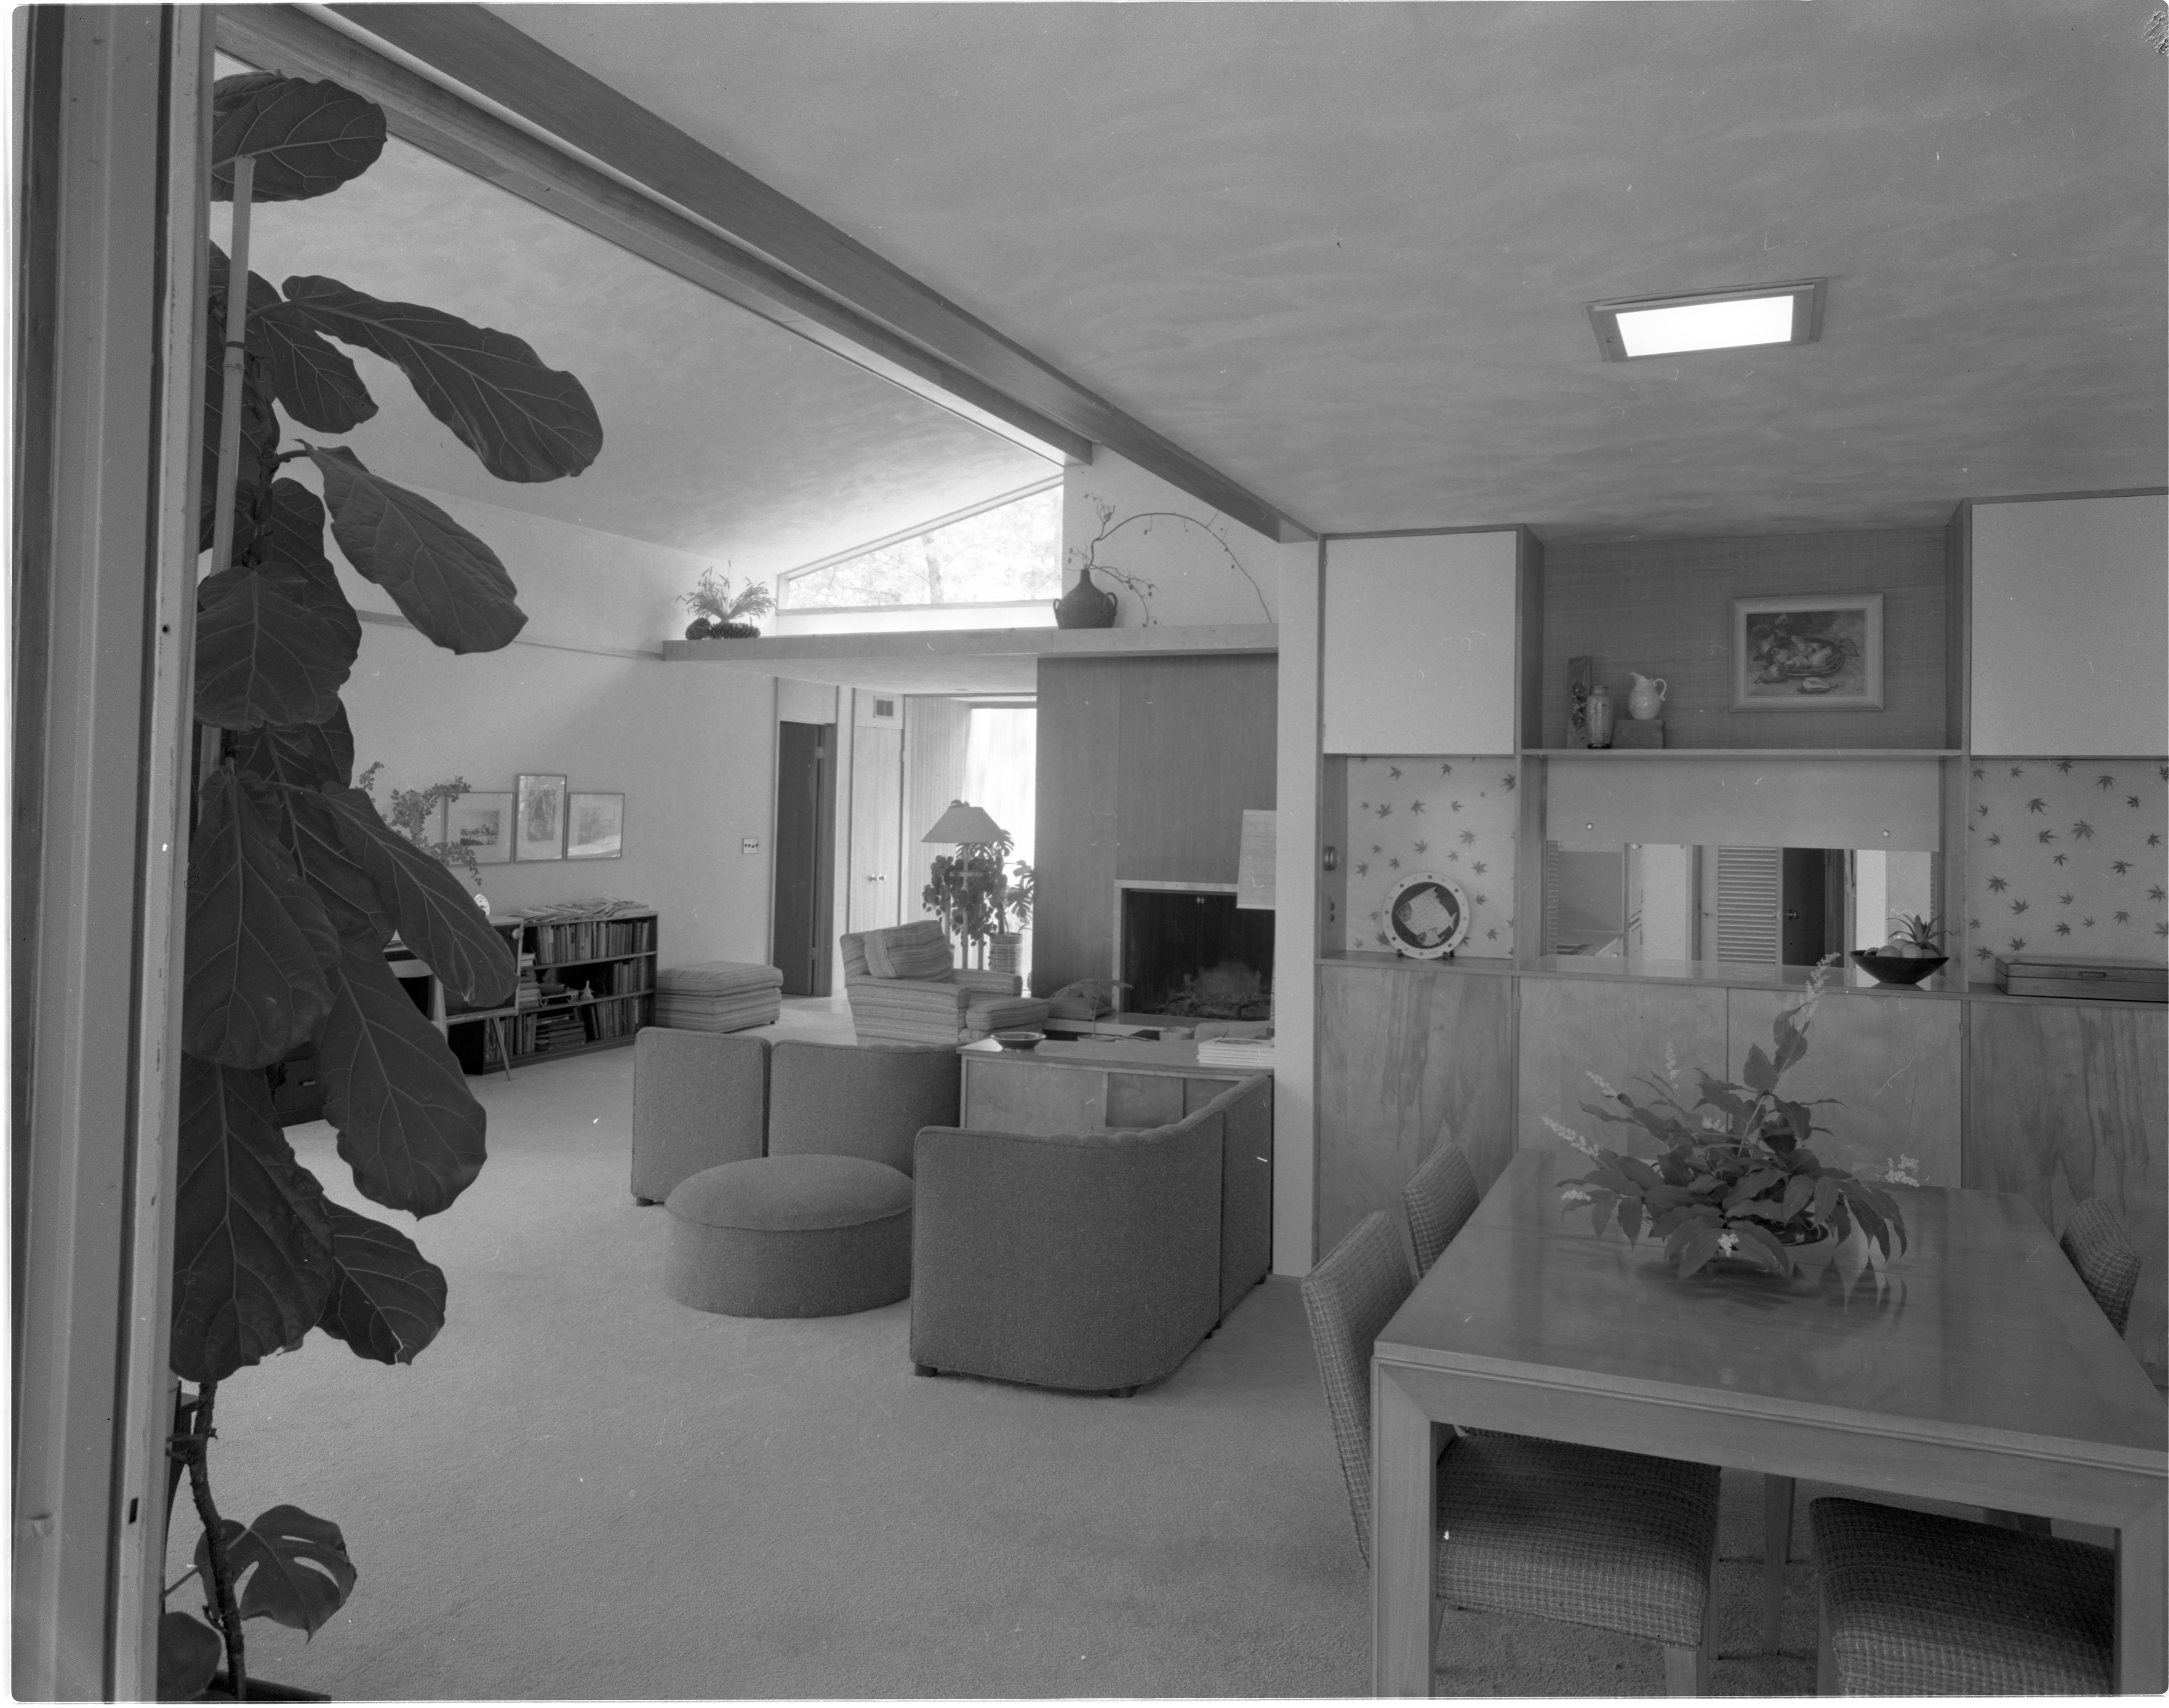 Cantilevered Entryway In Moore Home, June 1958 image